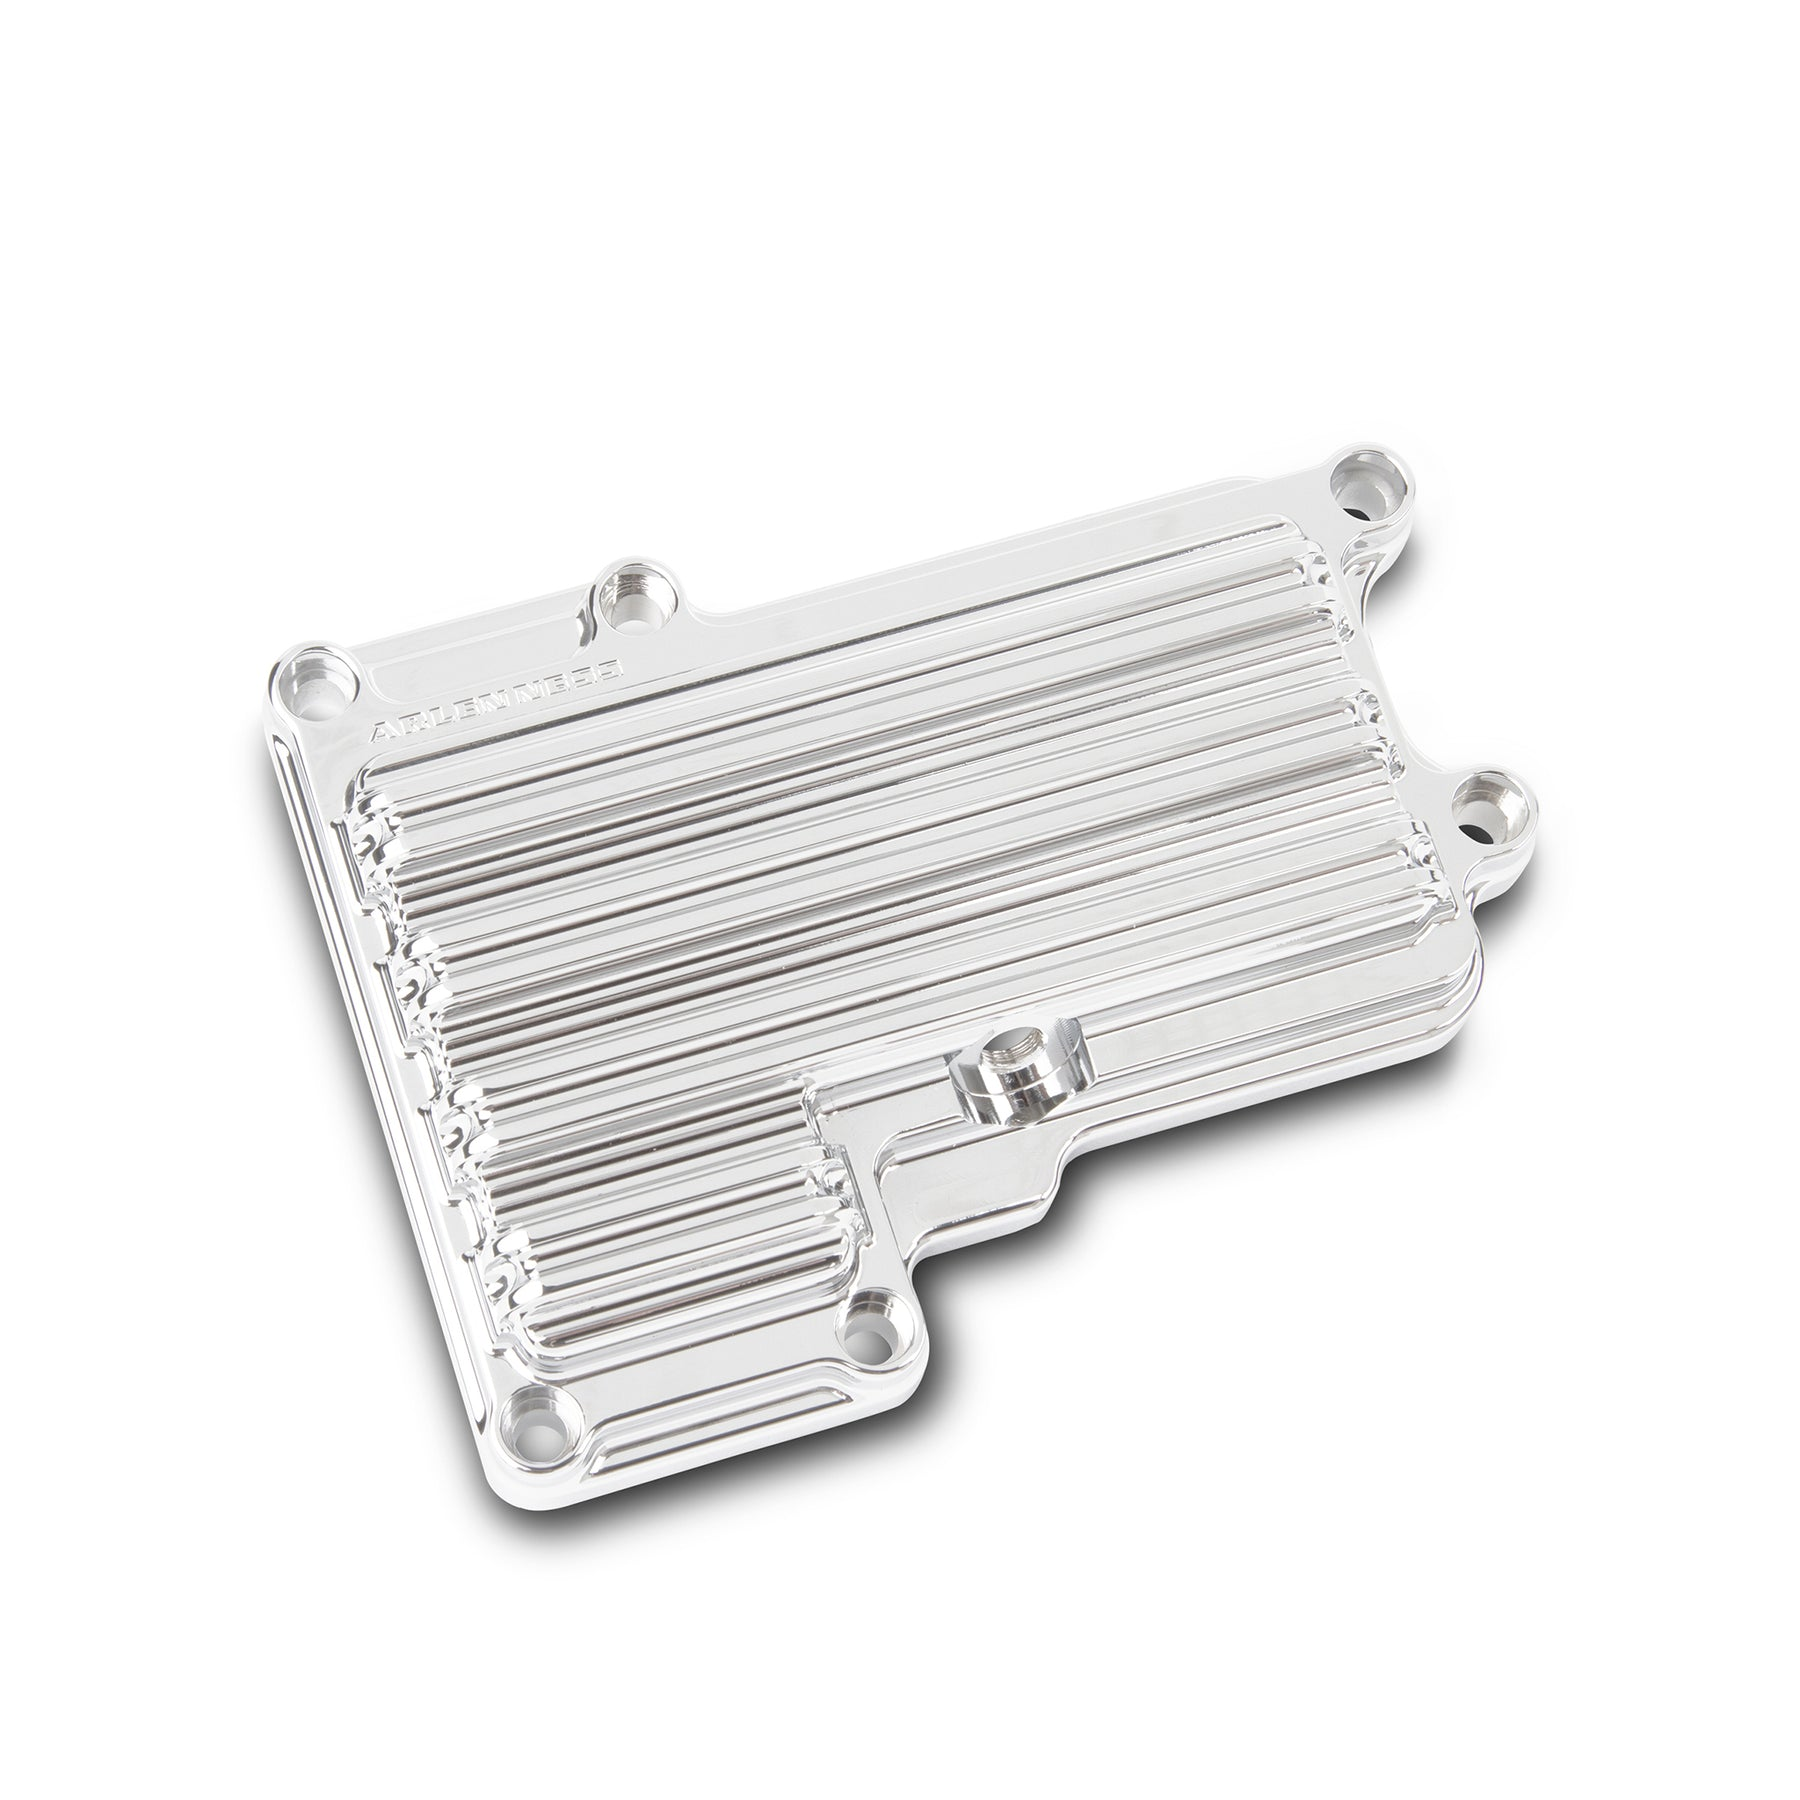 10-Gauge Transmission Top Covers, Chrome